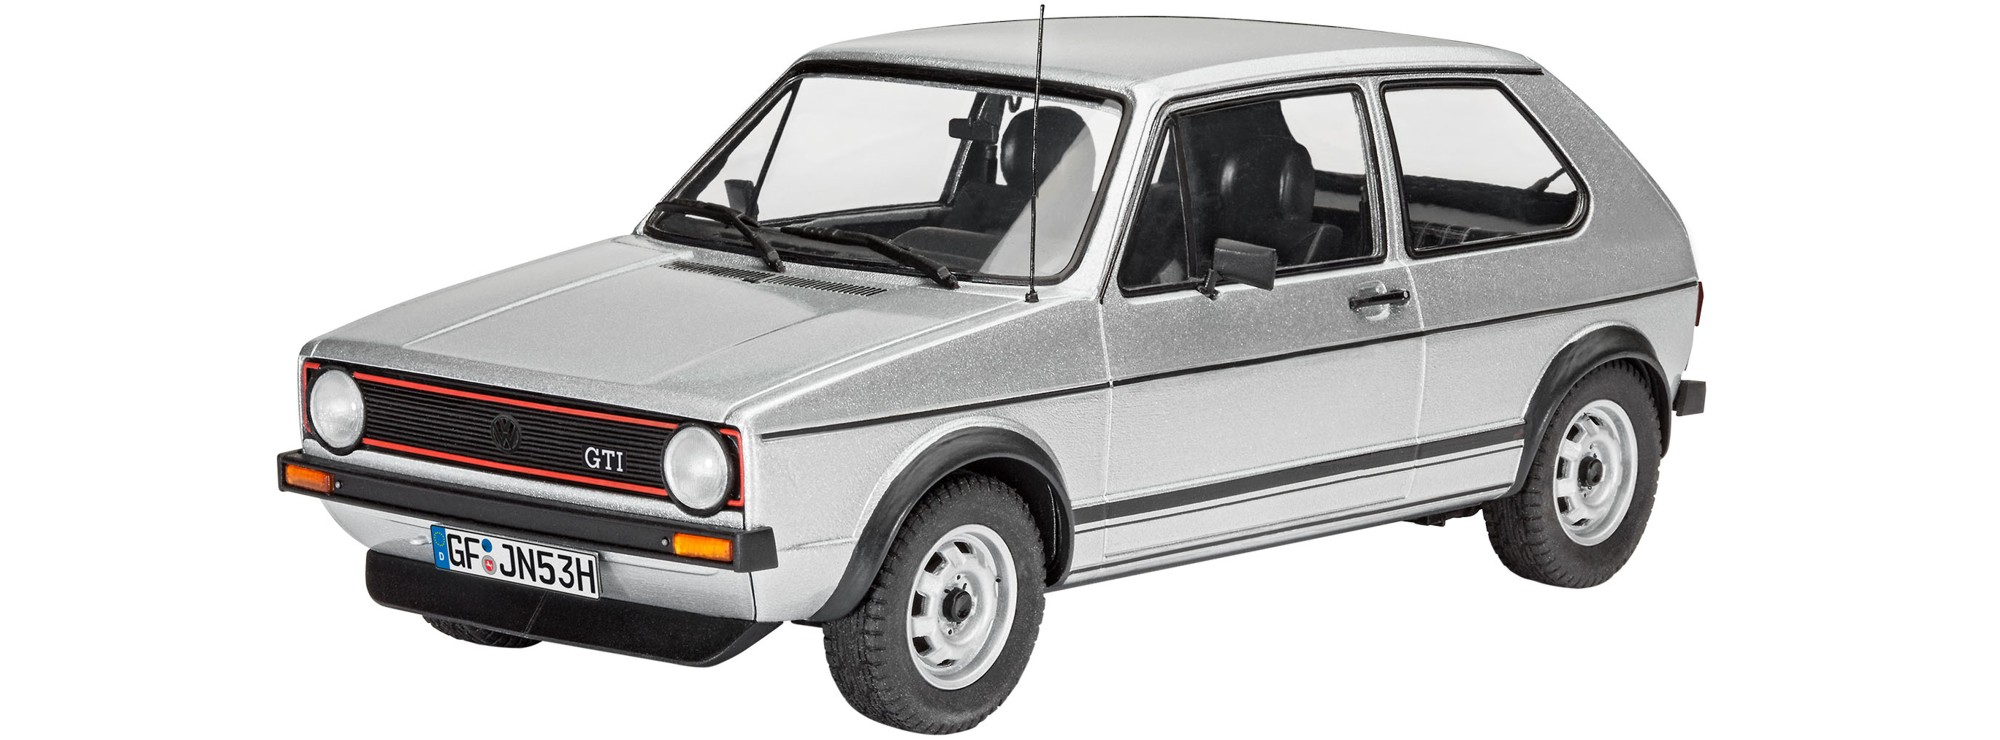 revell 07072 vw golf 1 gti auto bausatz 1 24 online. Black Bedroom Furniture Sets. Home Design Ideas